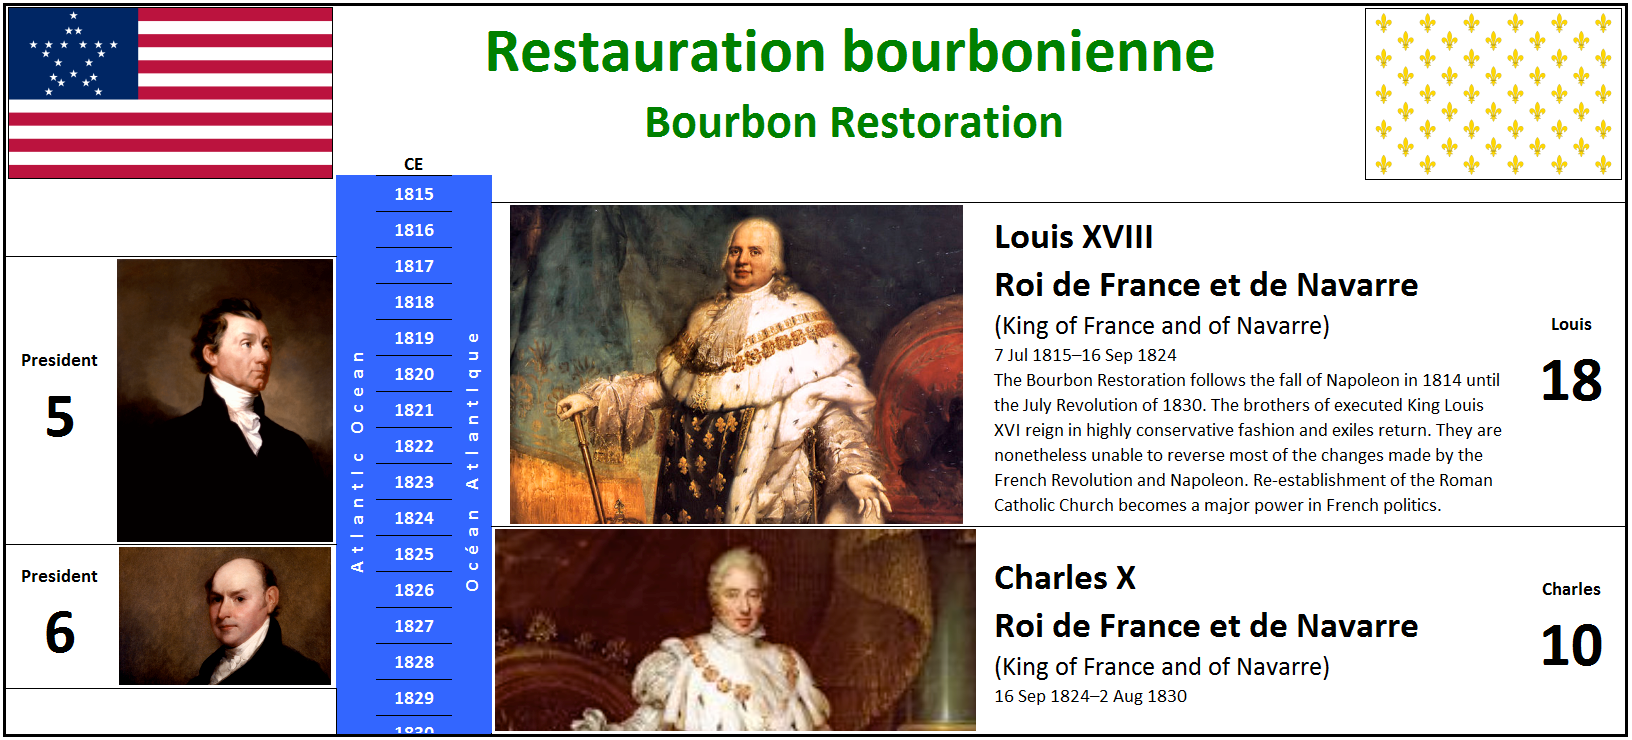 1815 Restauration bourbonienne